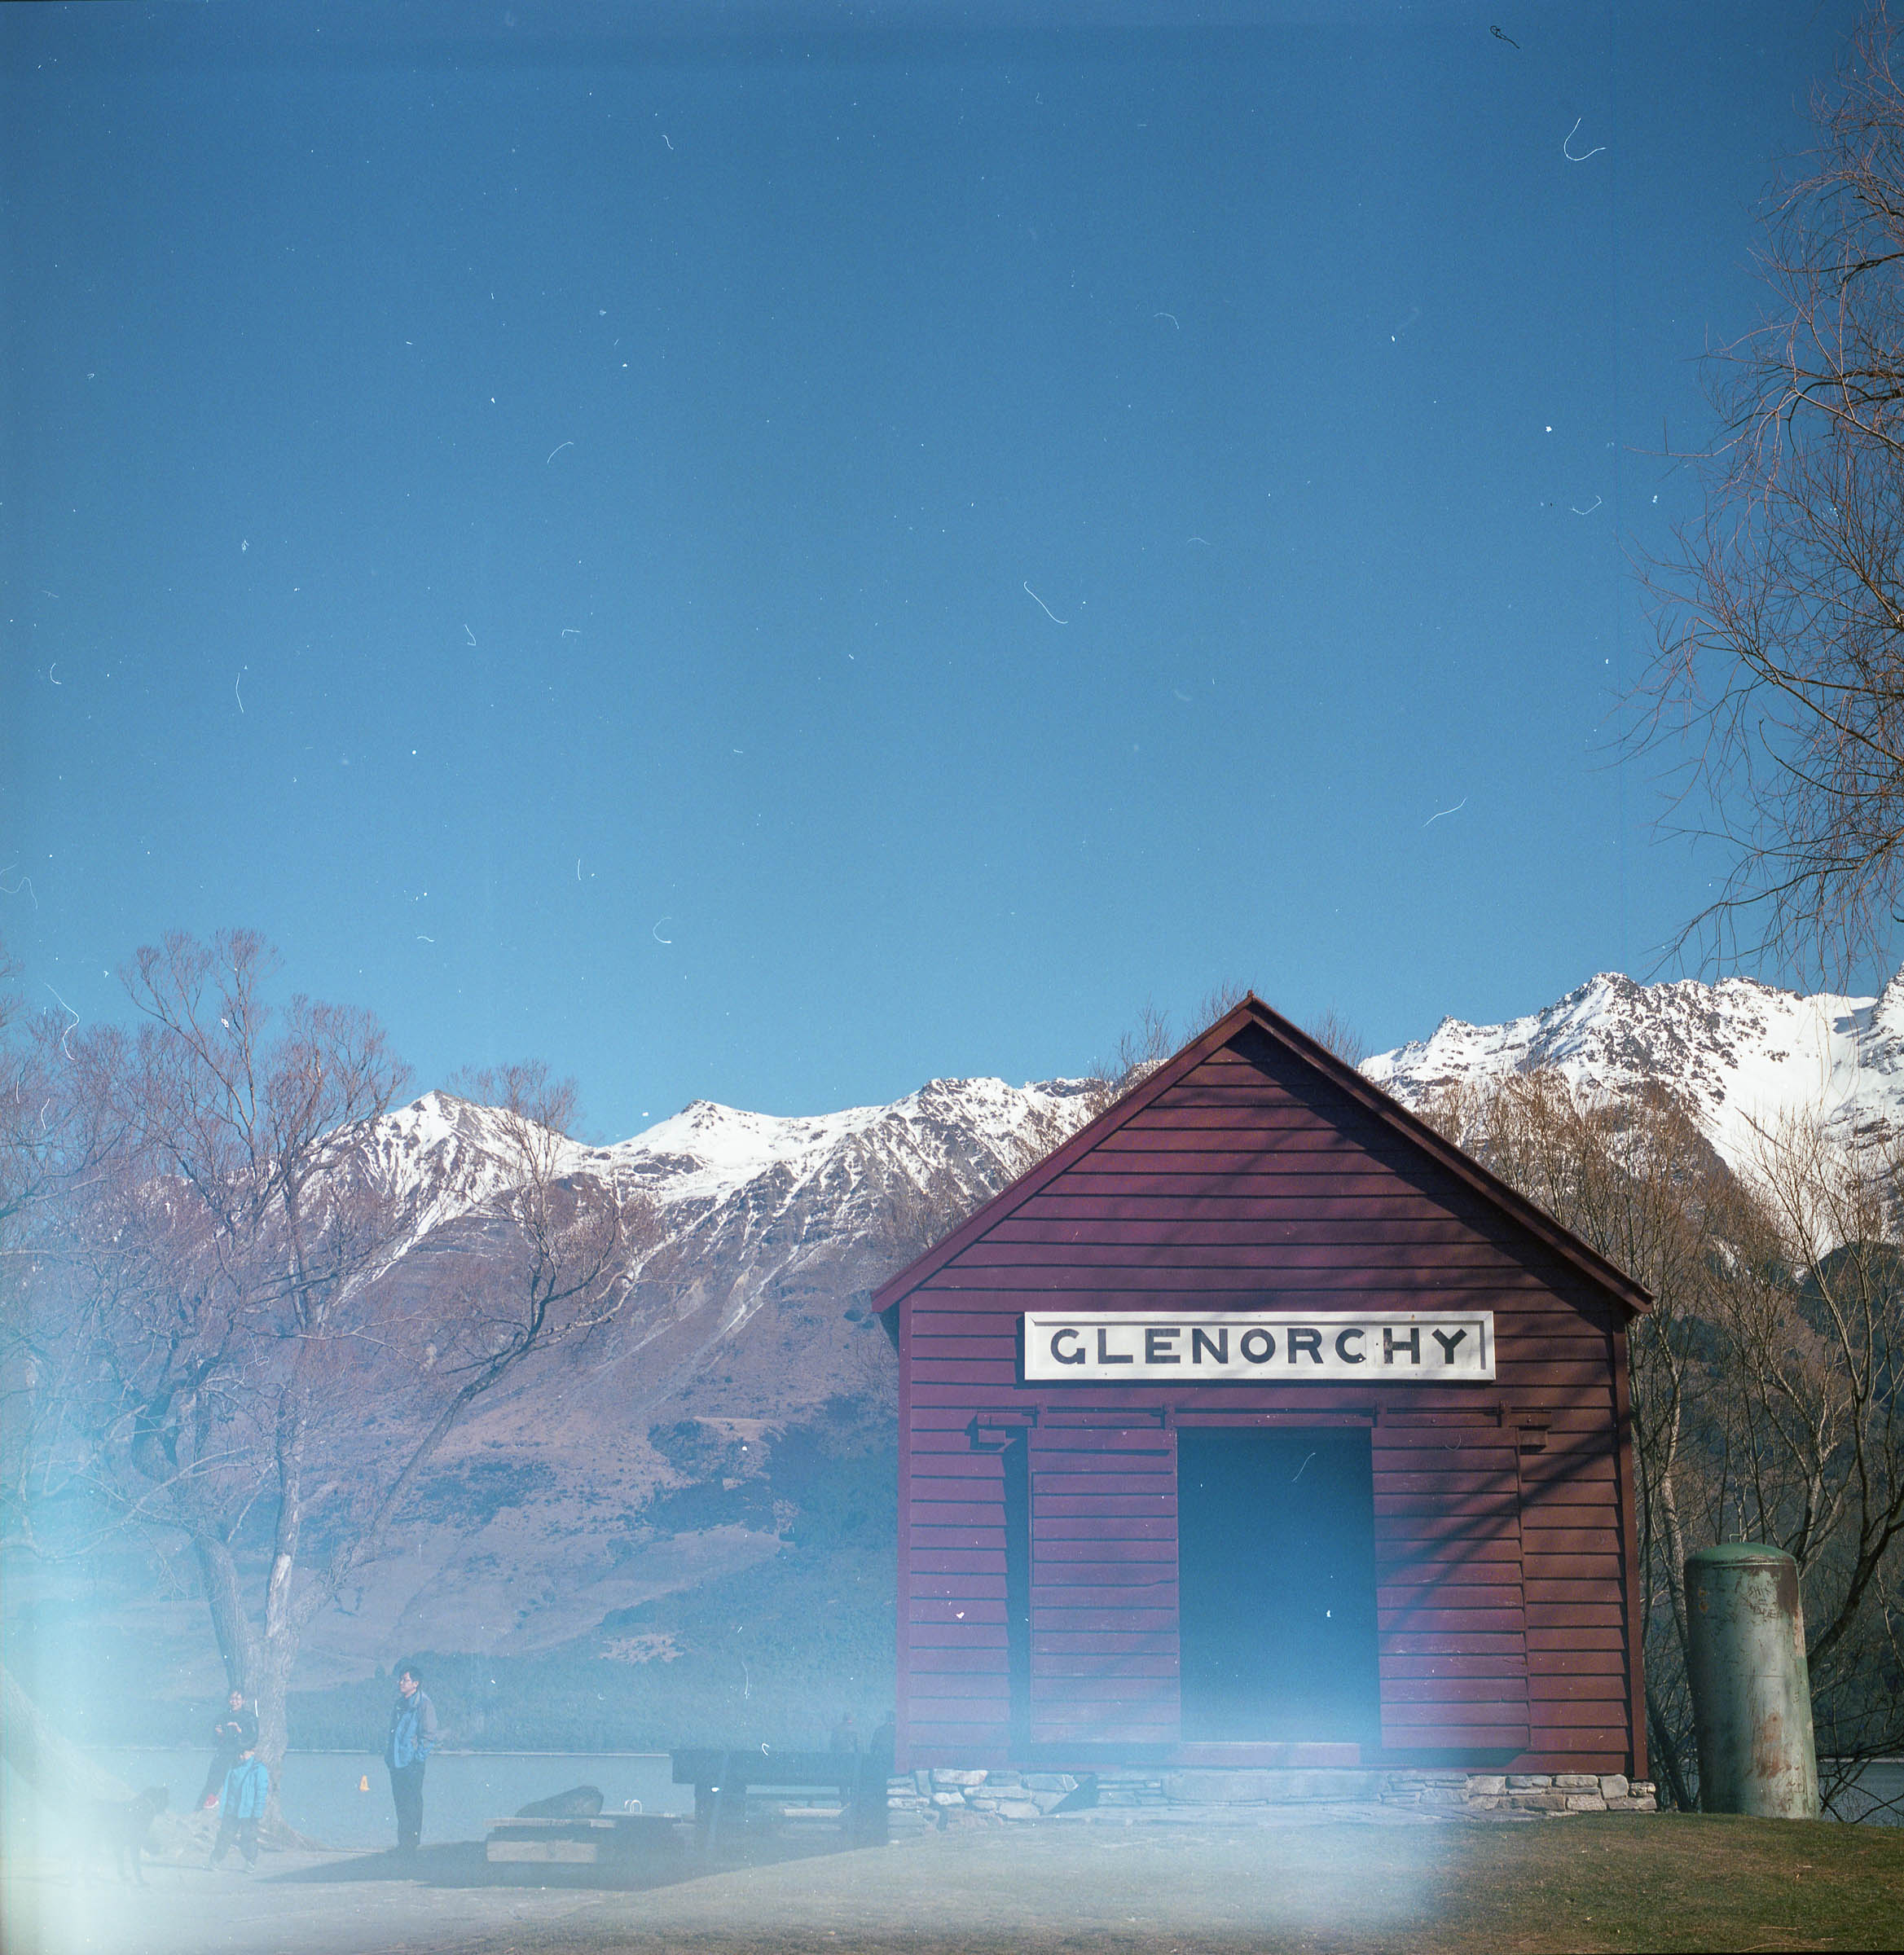 glenorchy boat shed. copyright leonie wise